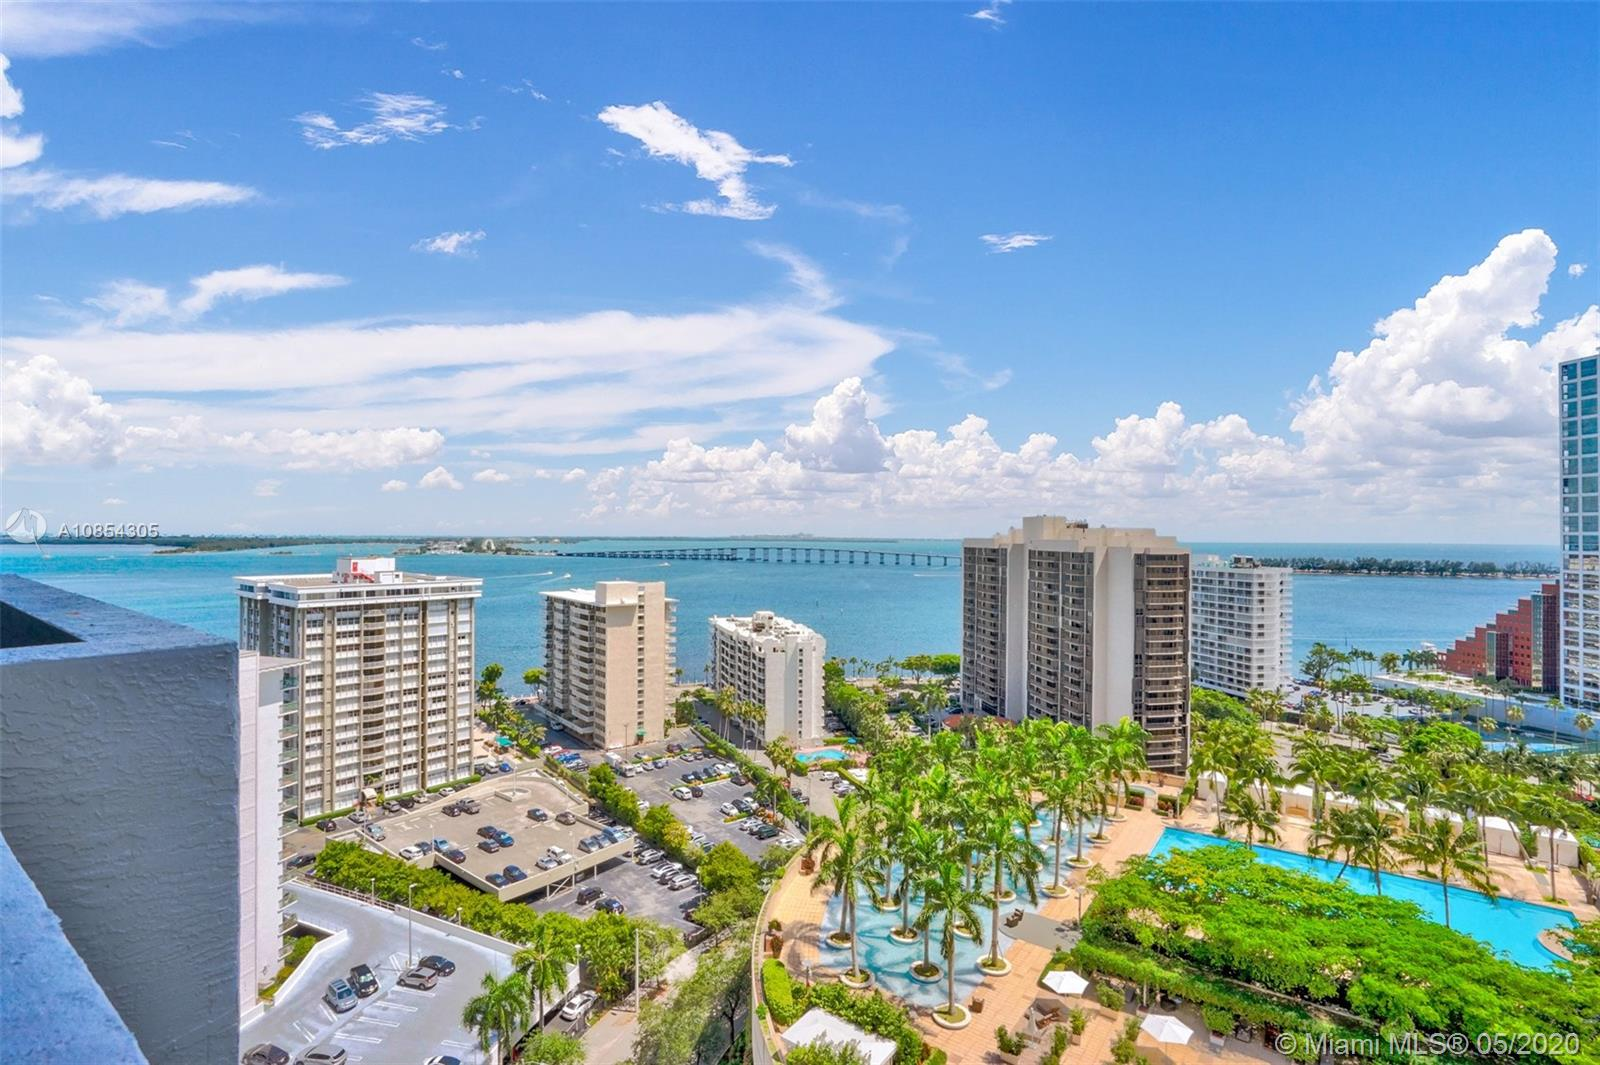 185 SE 14th Ter # 2006, Miami, Florida 33131, 2 Bedrooms Bedrooms, ,2 BathroomsBathrooms,Residential,For Sale,185 SE 14th Ter # 2006,A10854305